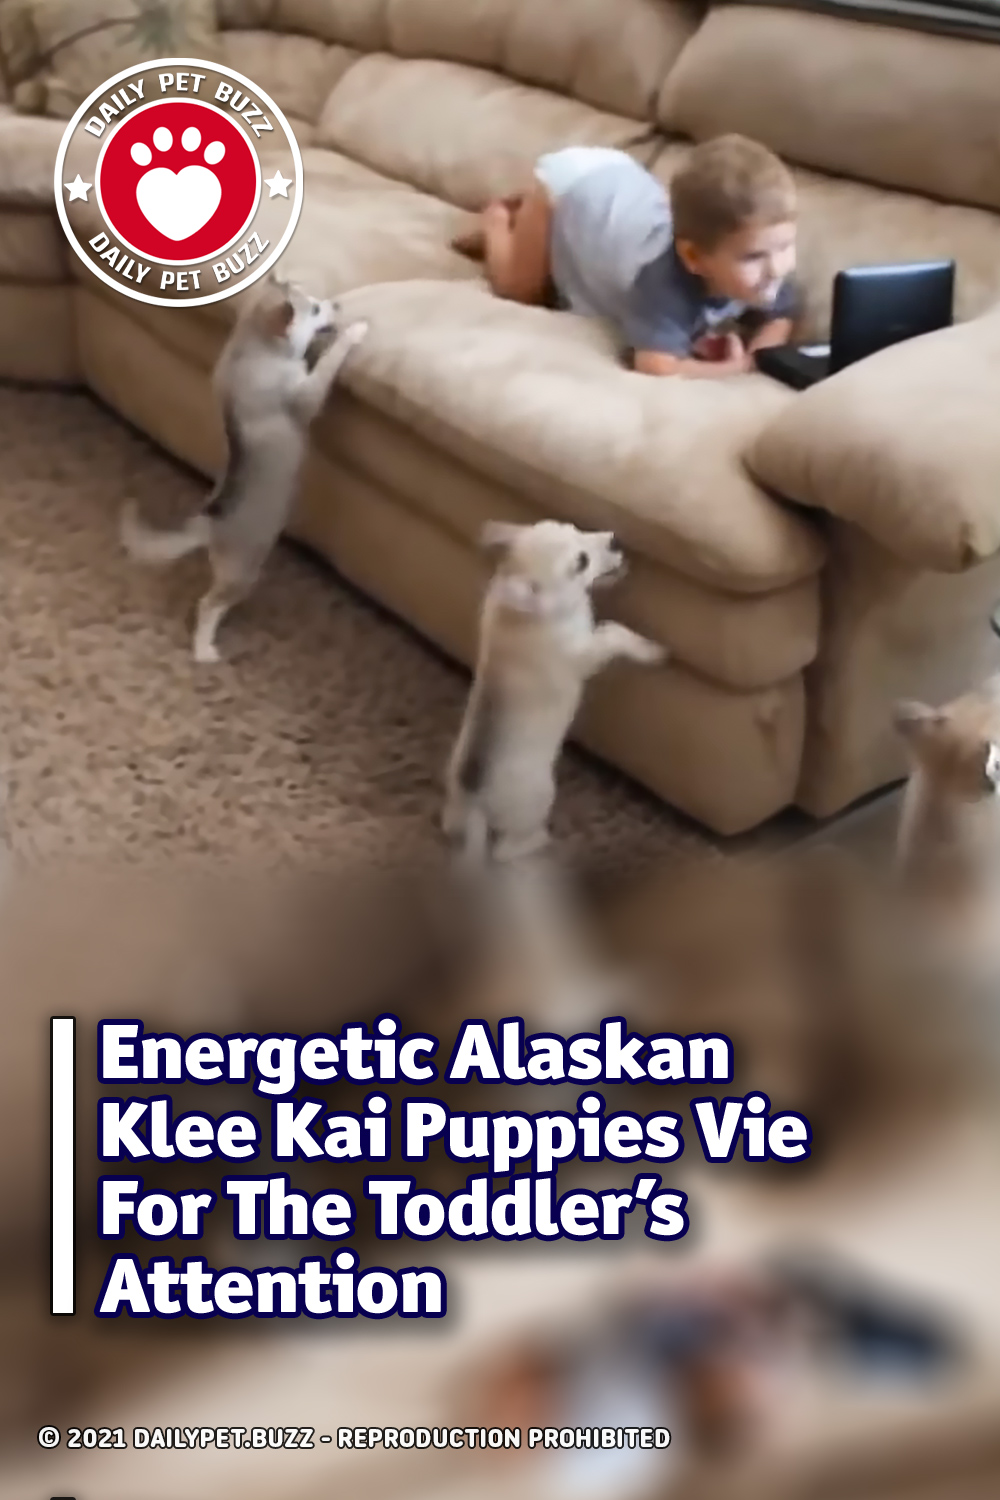 Energetic Alaskan Klee Kai Puppies Vie For The Toddler\'s Attention